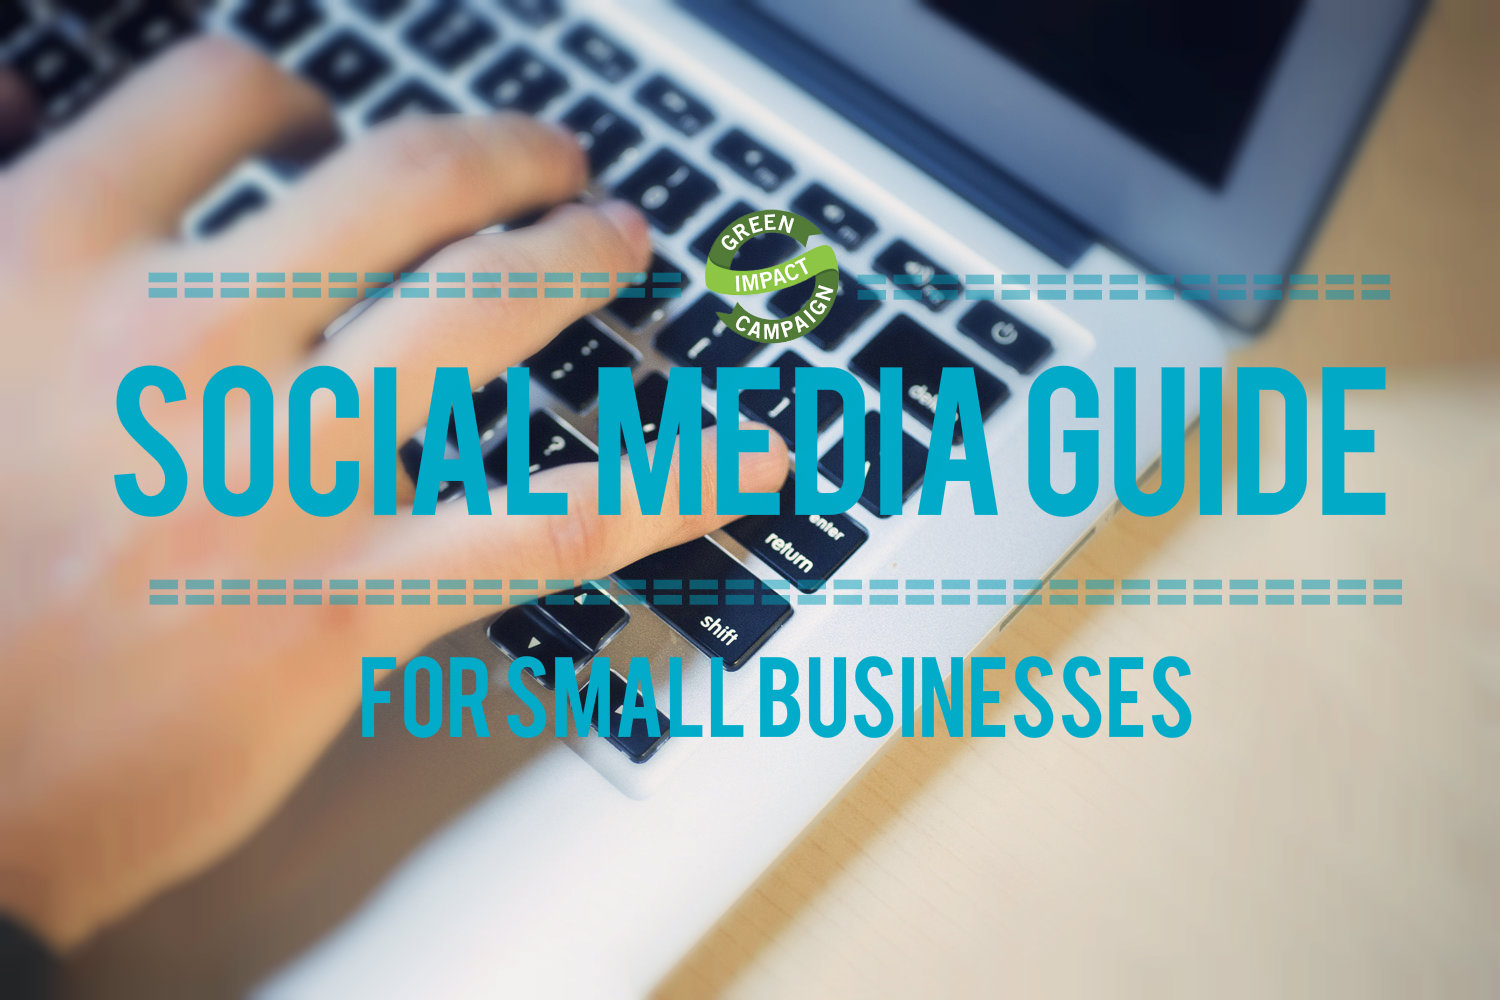 Social Media Guide for Participating GIC Businesses